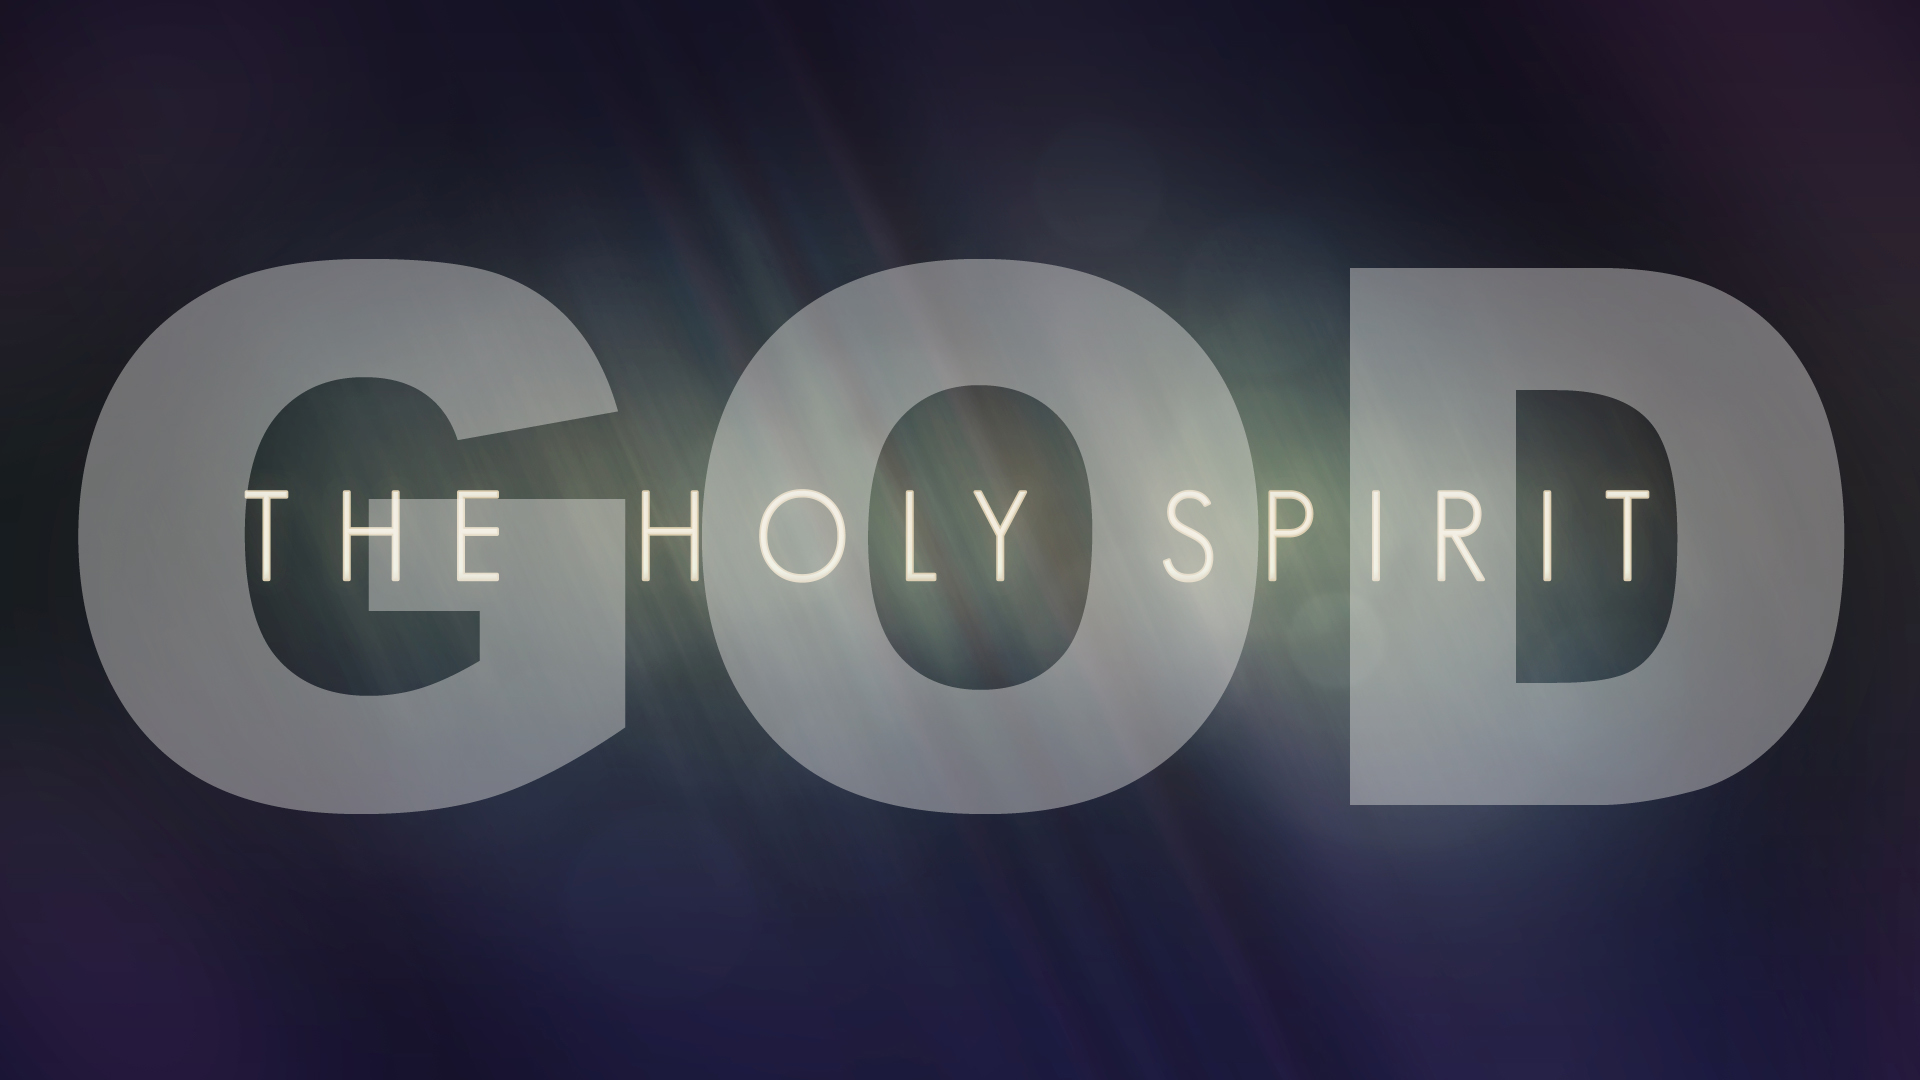 GOD-THE HOLY SPIRIT